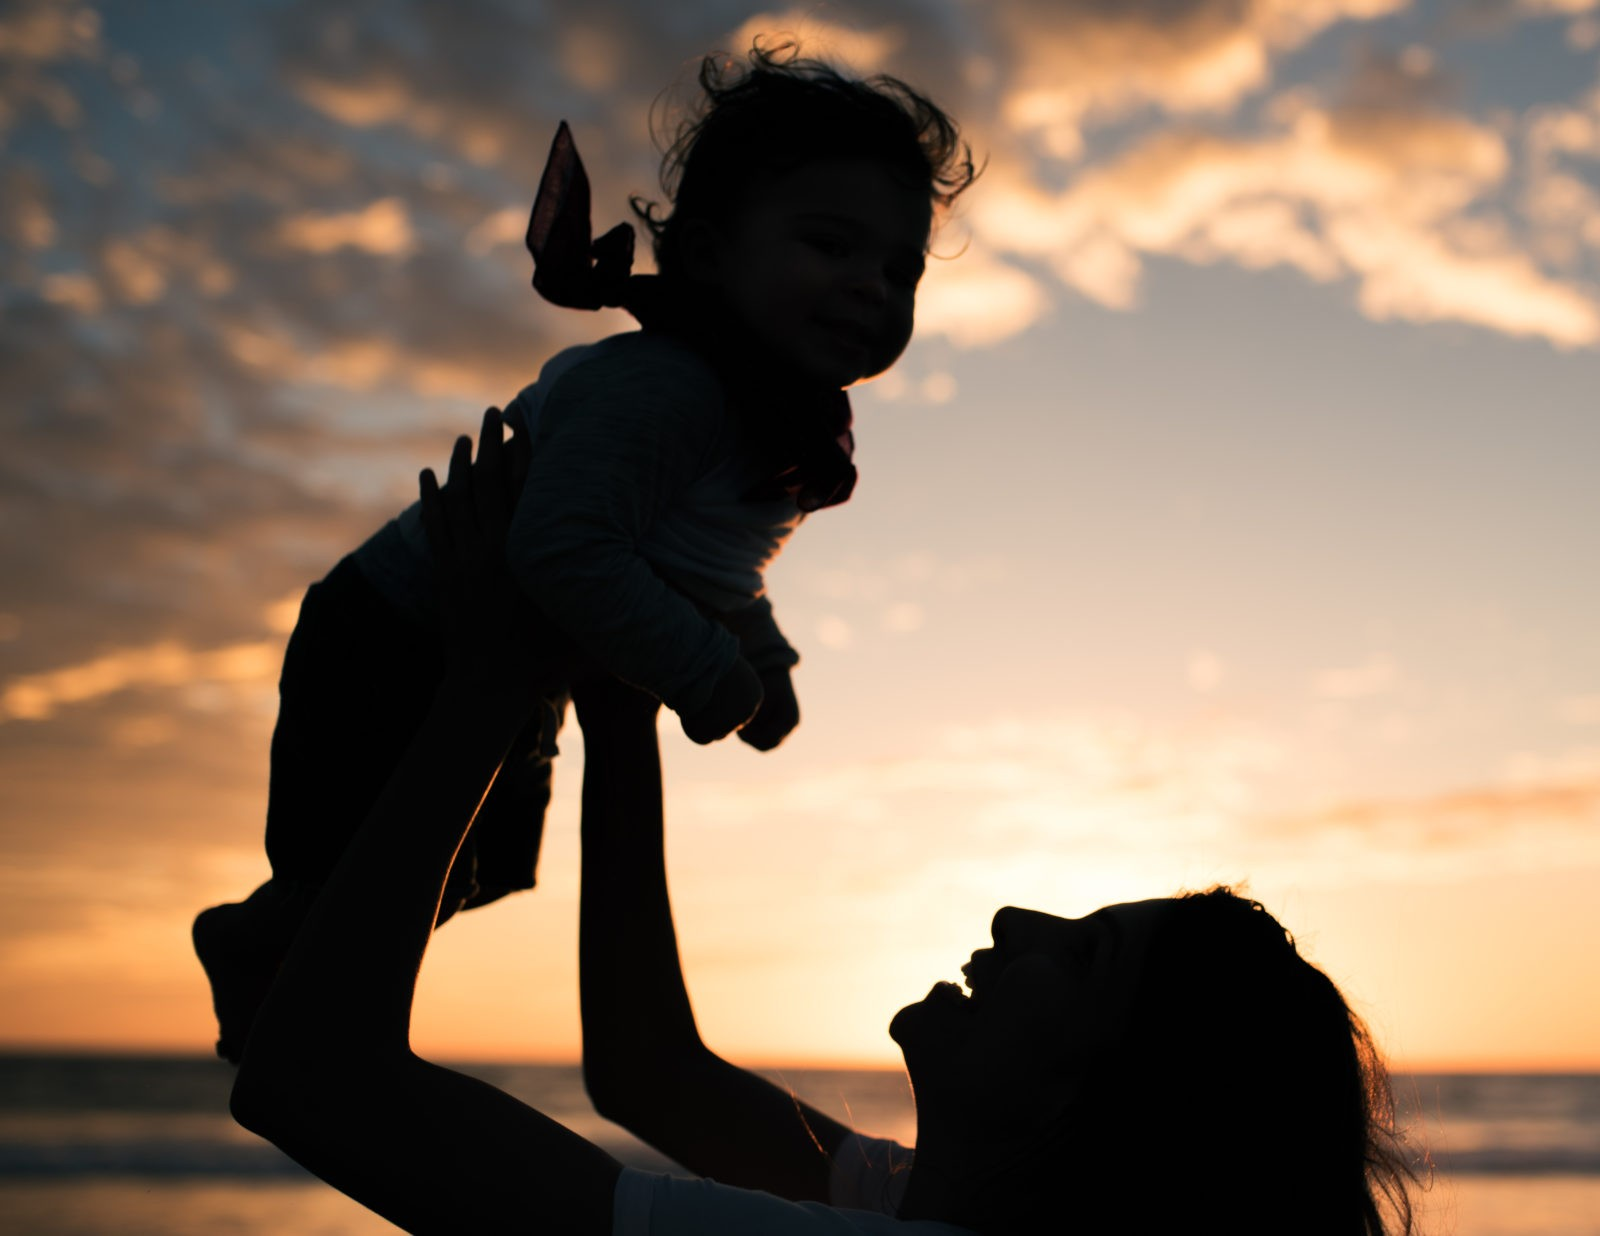 In this sunset family portrait by Artshaped photography in Santa Monica, California a young mother lifts her son in the sky agaist the clouds lit by the sun setting on the beach.